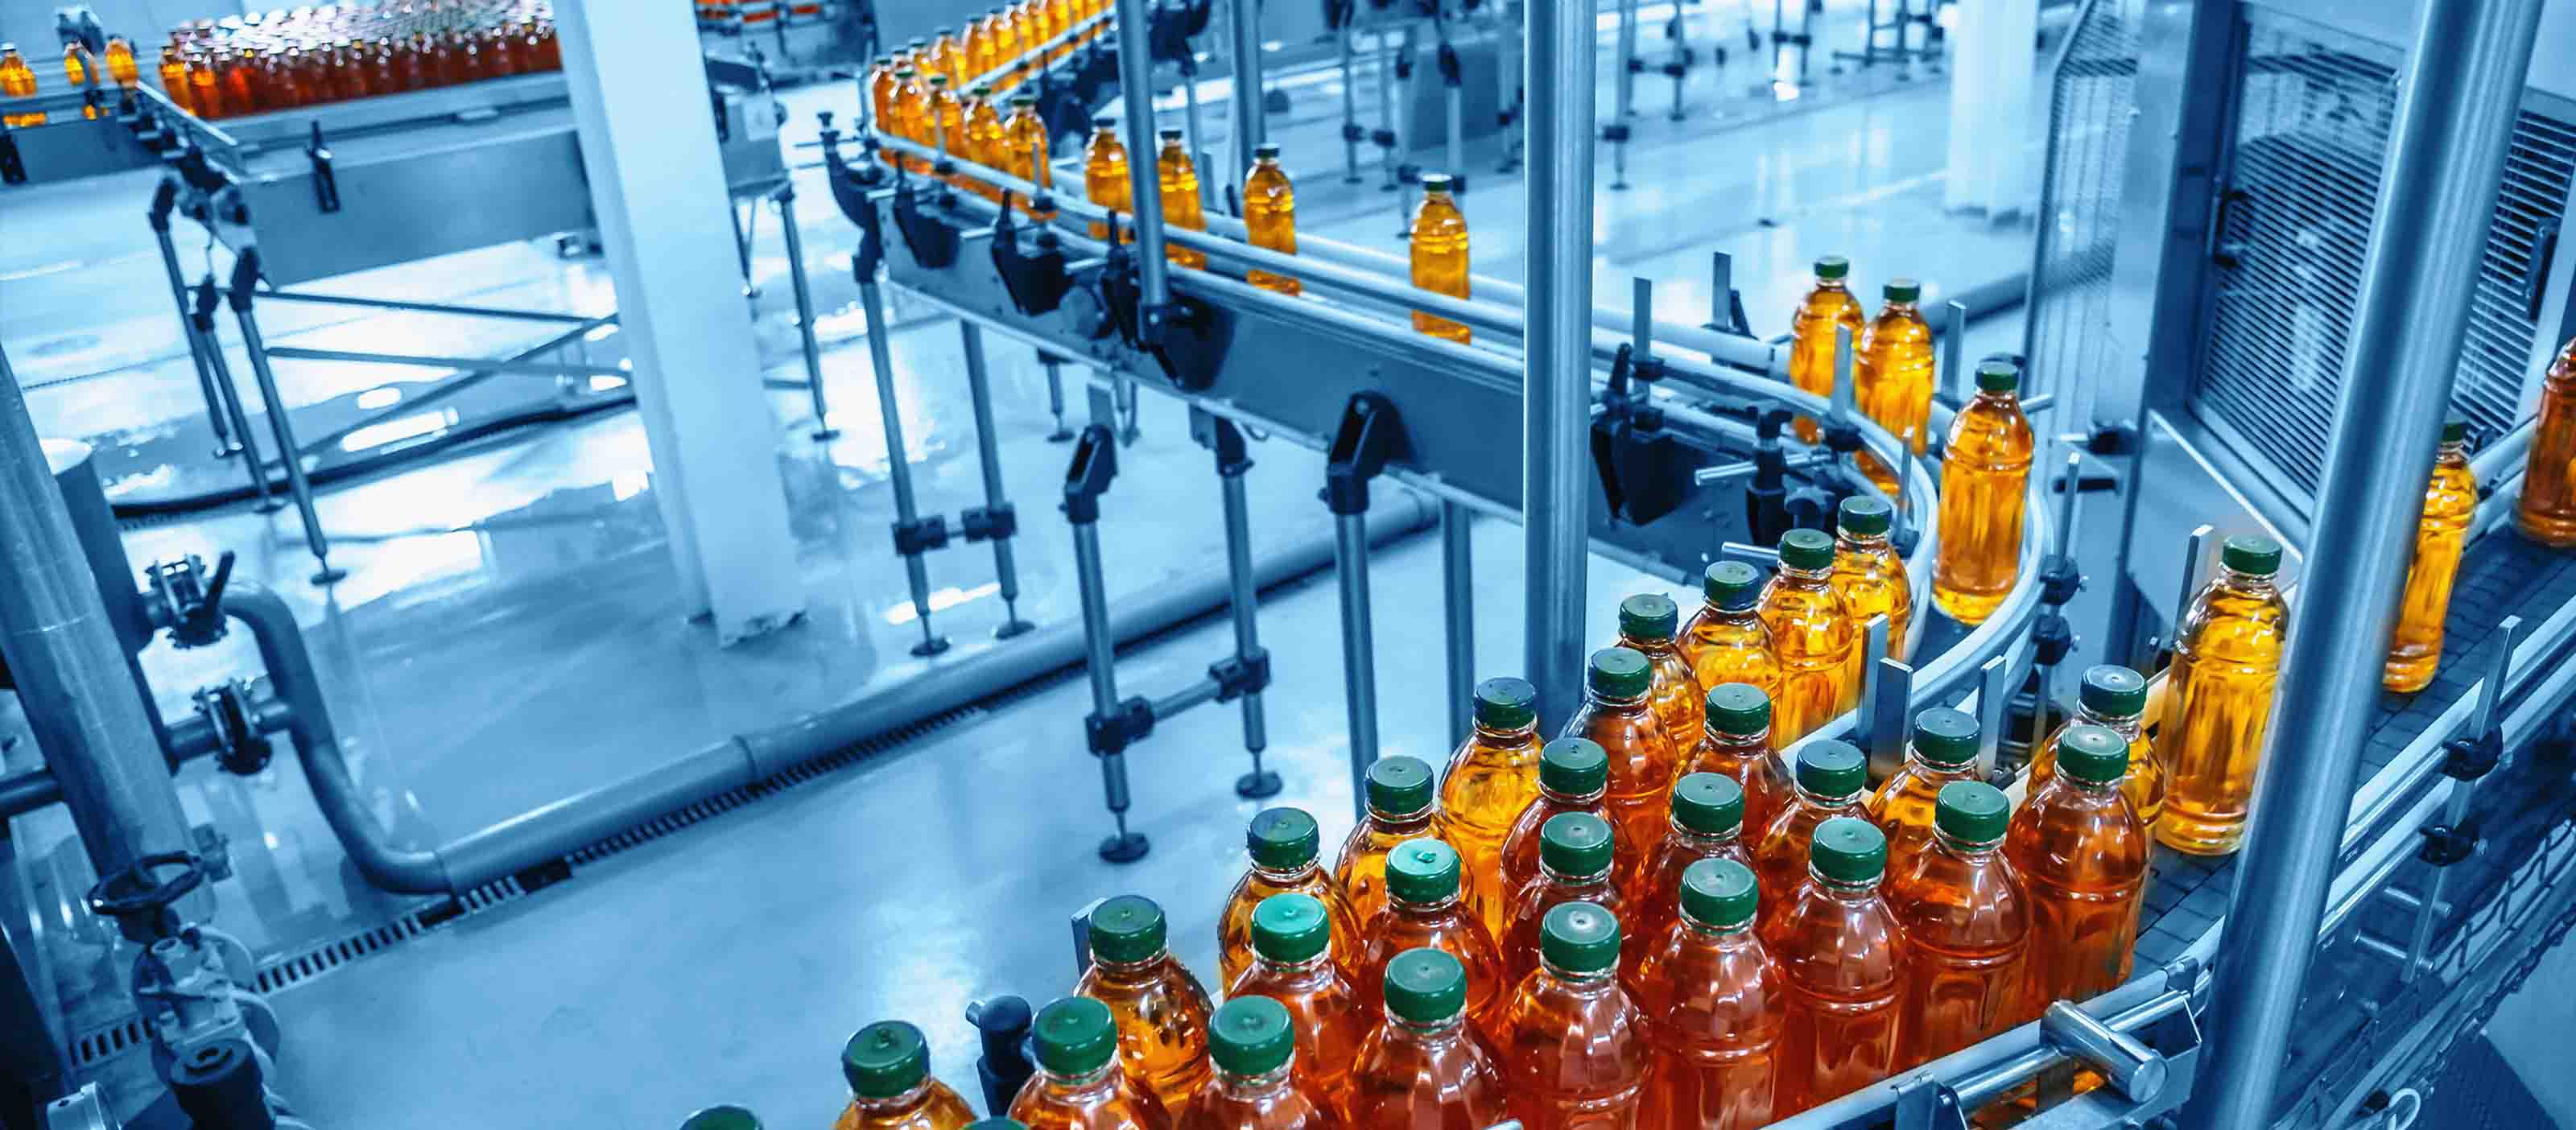 Manufacturing software for food&beverage and CPG operations